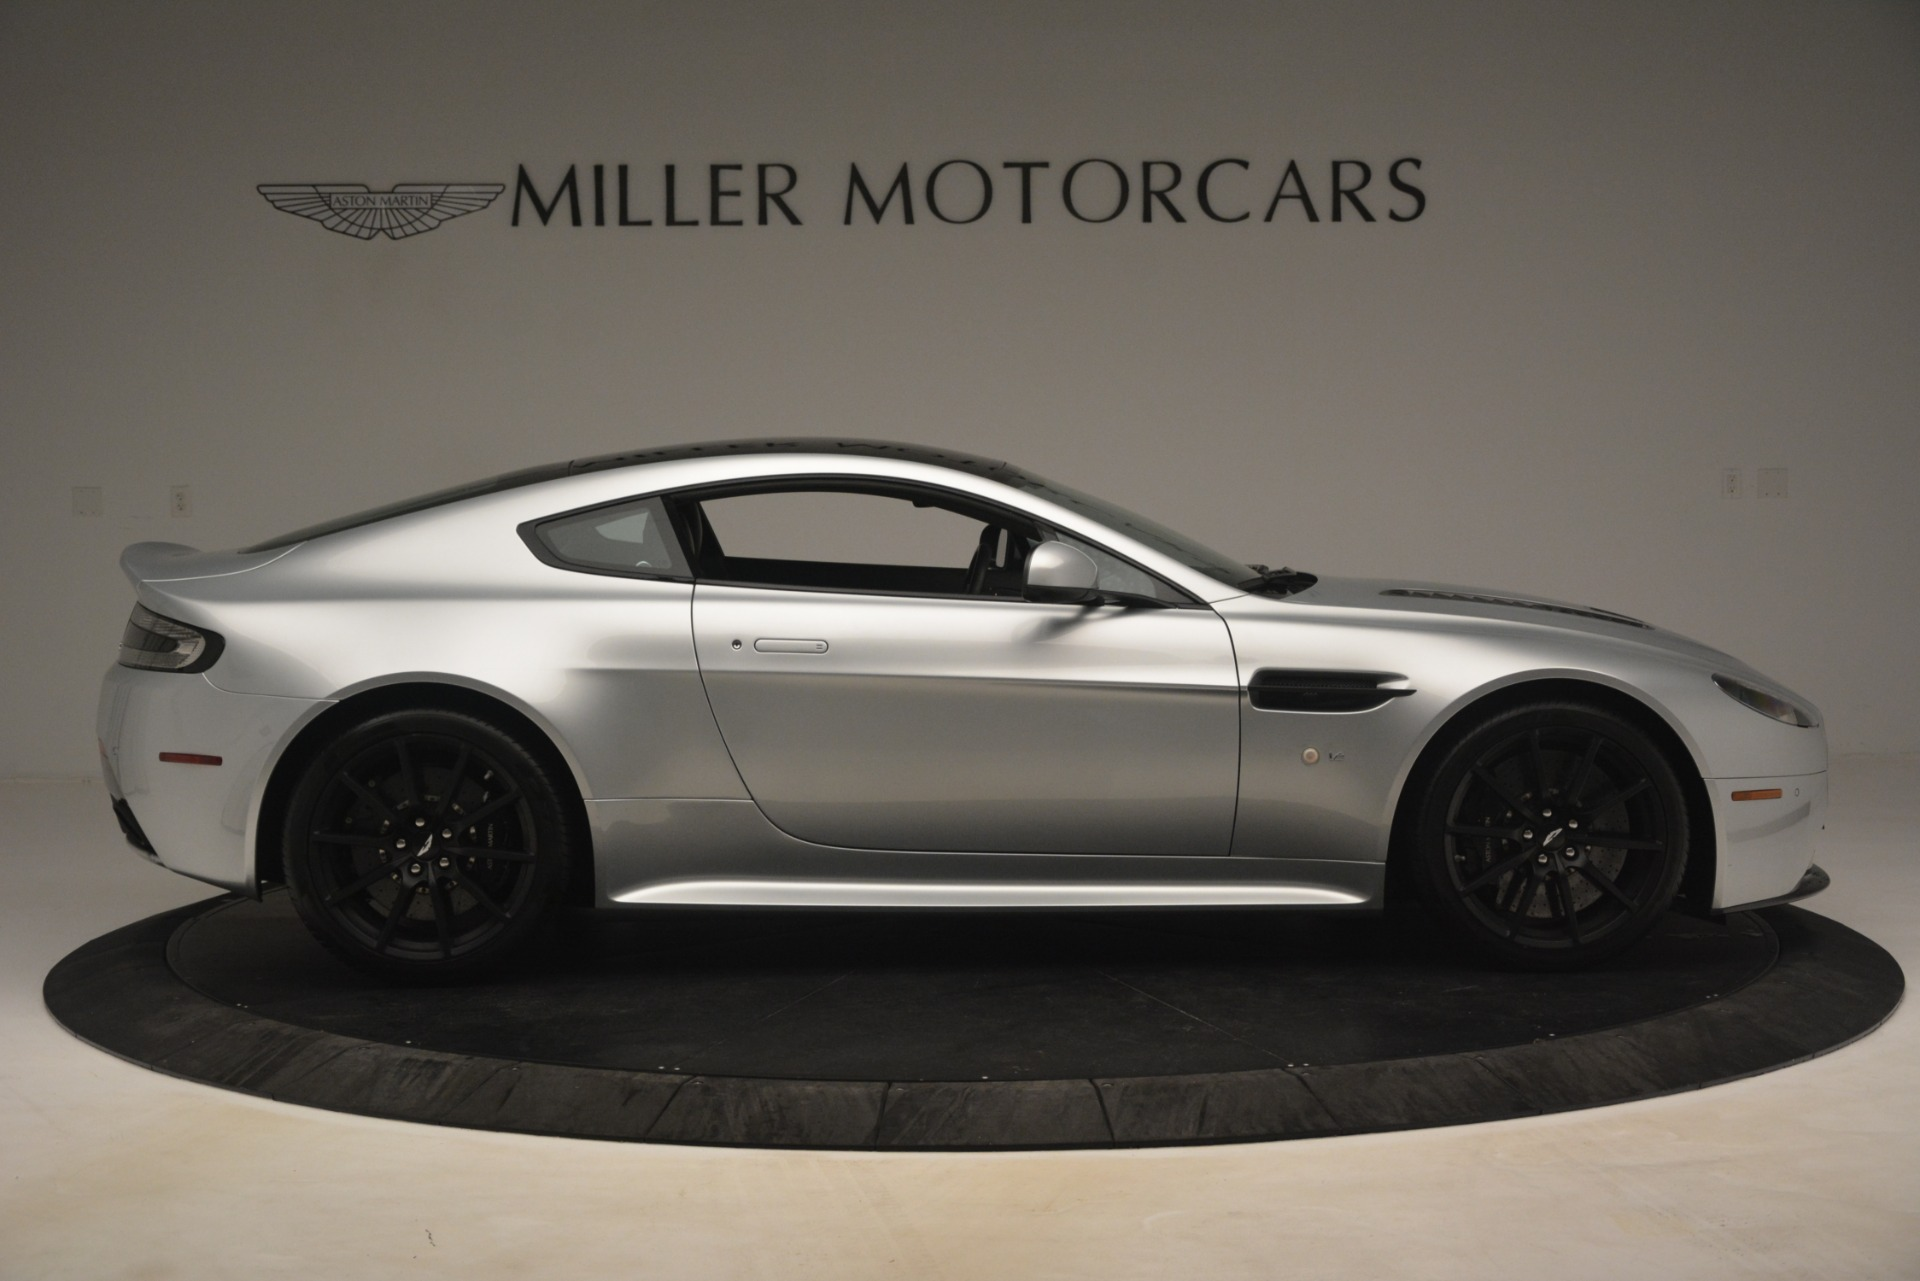 Used 2015 Aston Martin V12 Vantage S Coupe For Sale In Greenwich, CT. Alfa Romeo of Greenwich, 7577 3206_p9